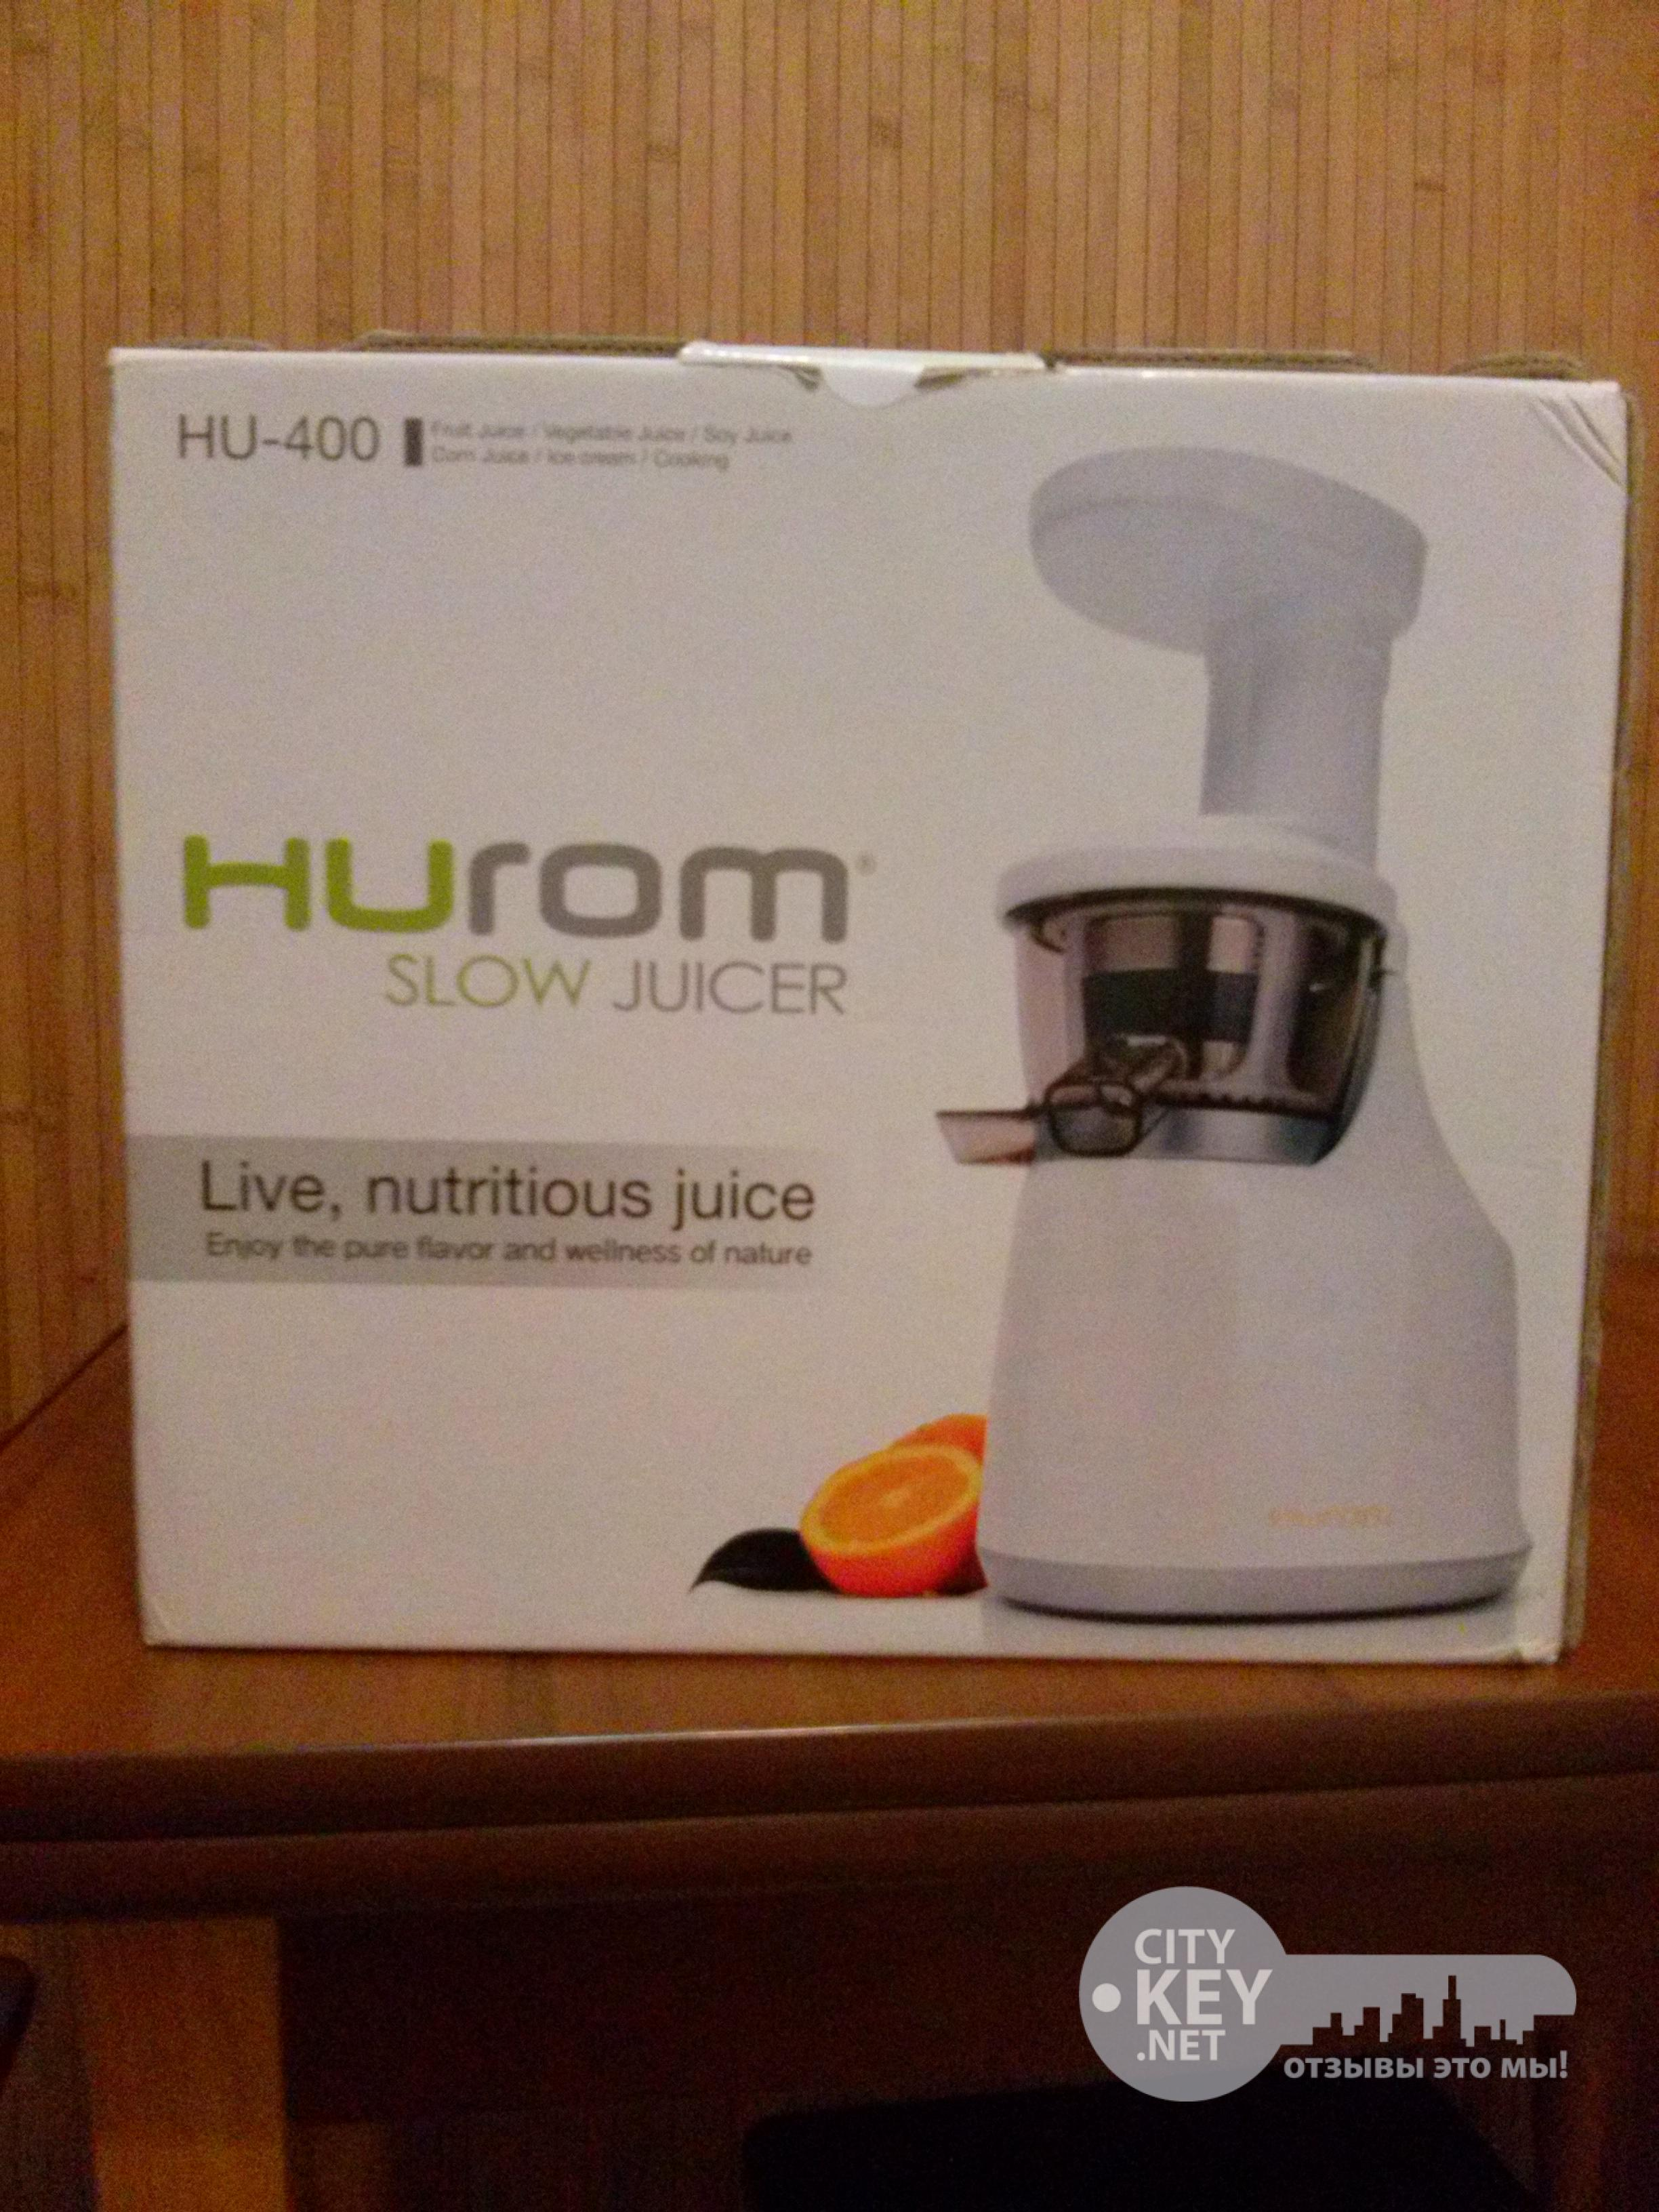 Hurom Slow Juicer Hu 400 Test : ????????????? Hurom Slow Juicer HU-400 - ?????? CityKey.net